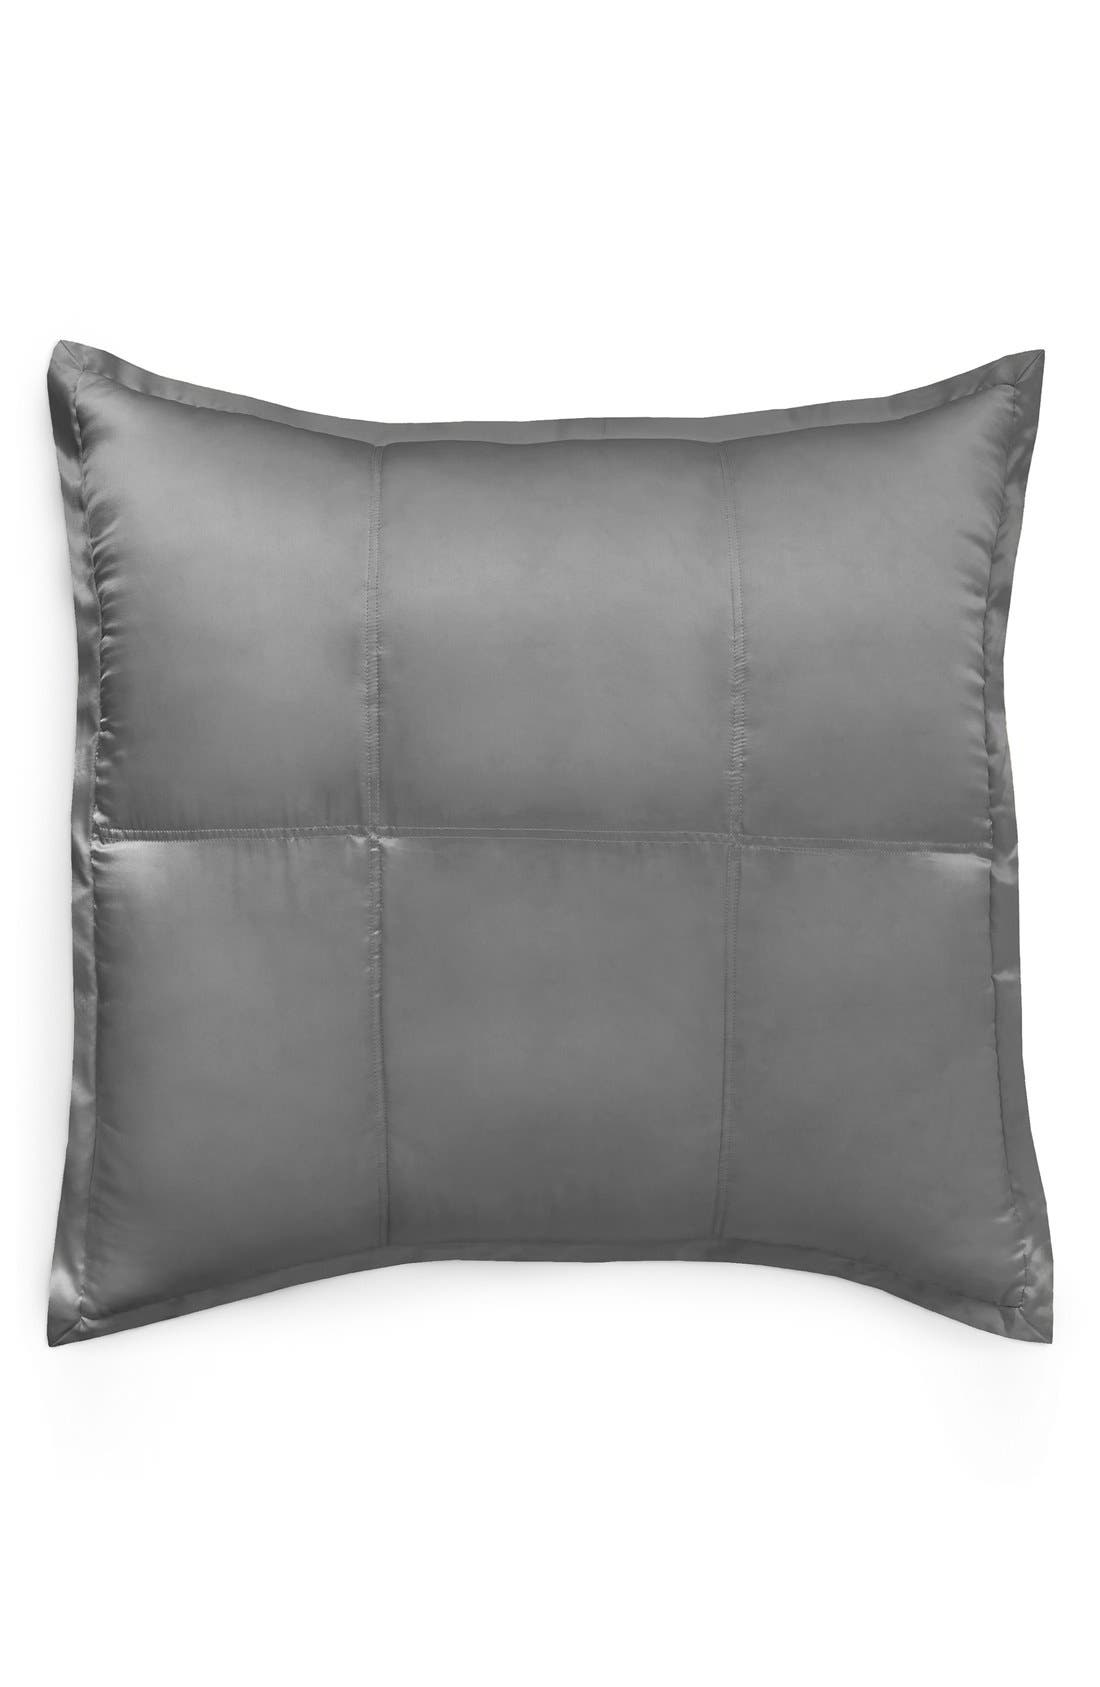 DONNA KARAN NEW YORK, Donna Karan Collection 'Surface' Silk Charmeuse Euro Pillow Sham, Main thumbnail 1, color, CHARCOAL